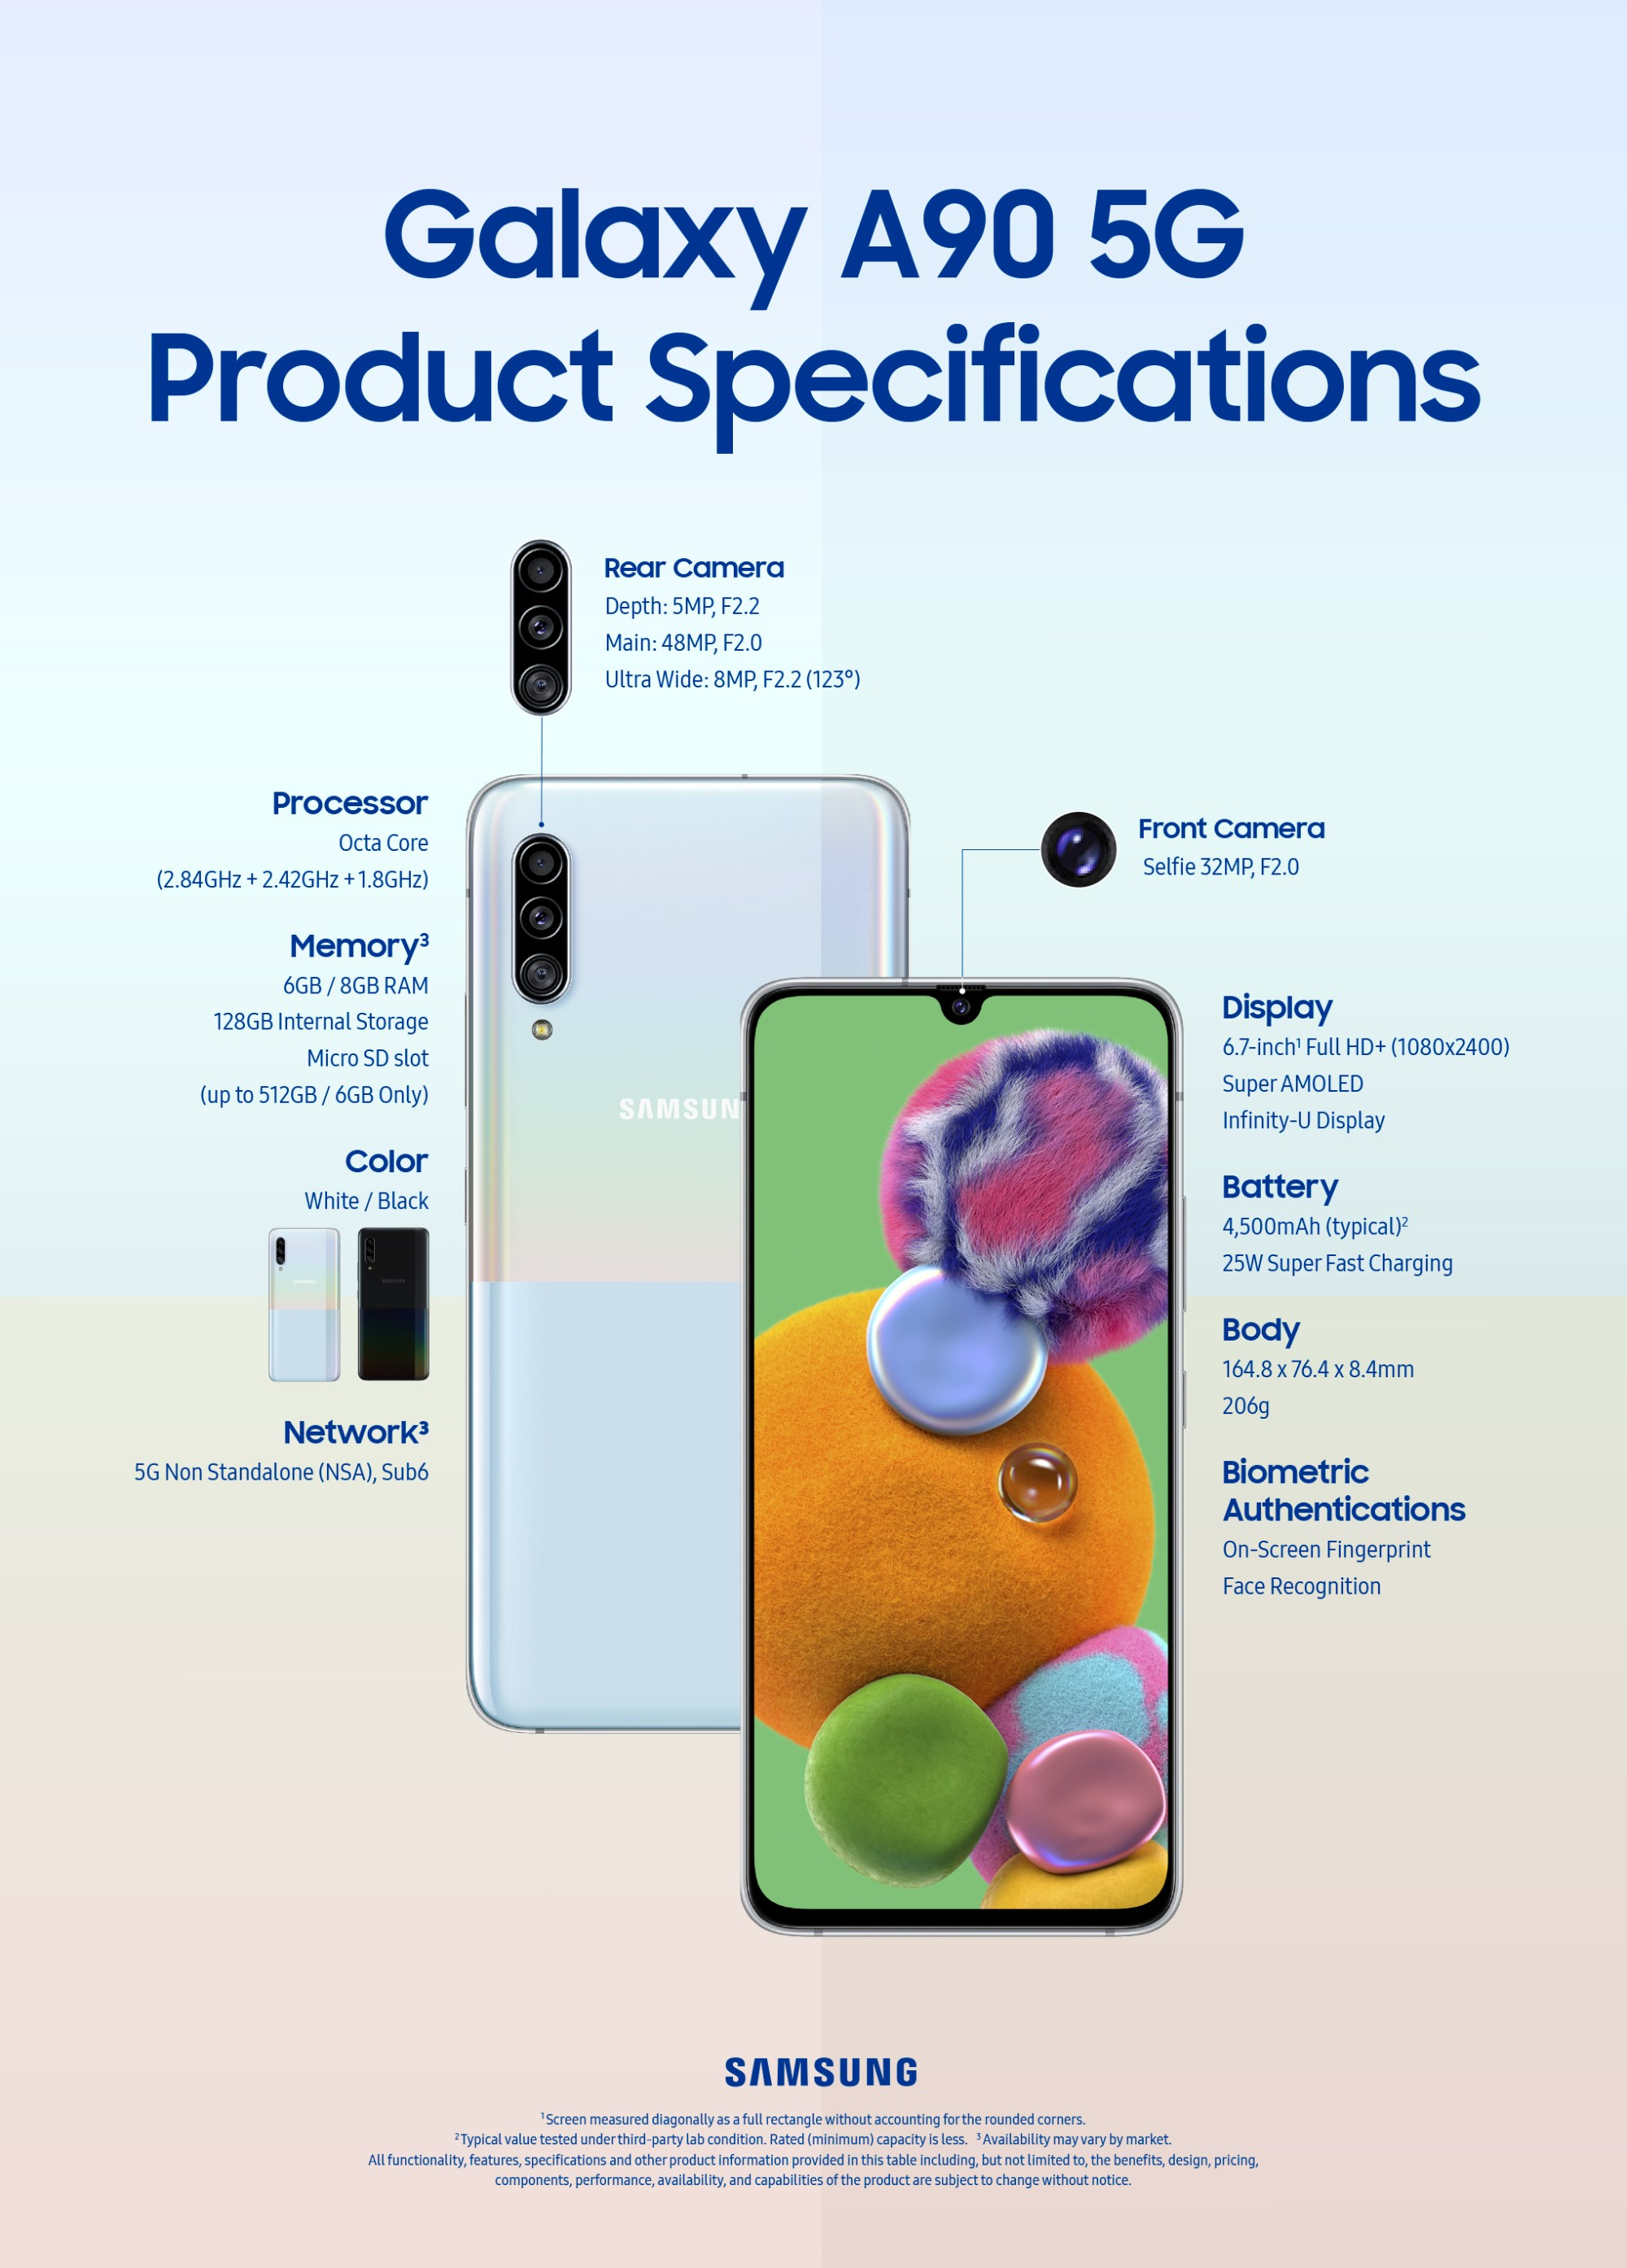 Galaxy_A90-5G_Product_Specifications.jpg